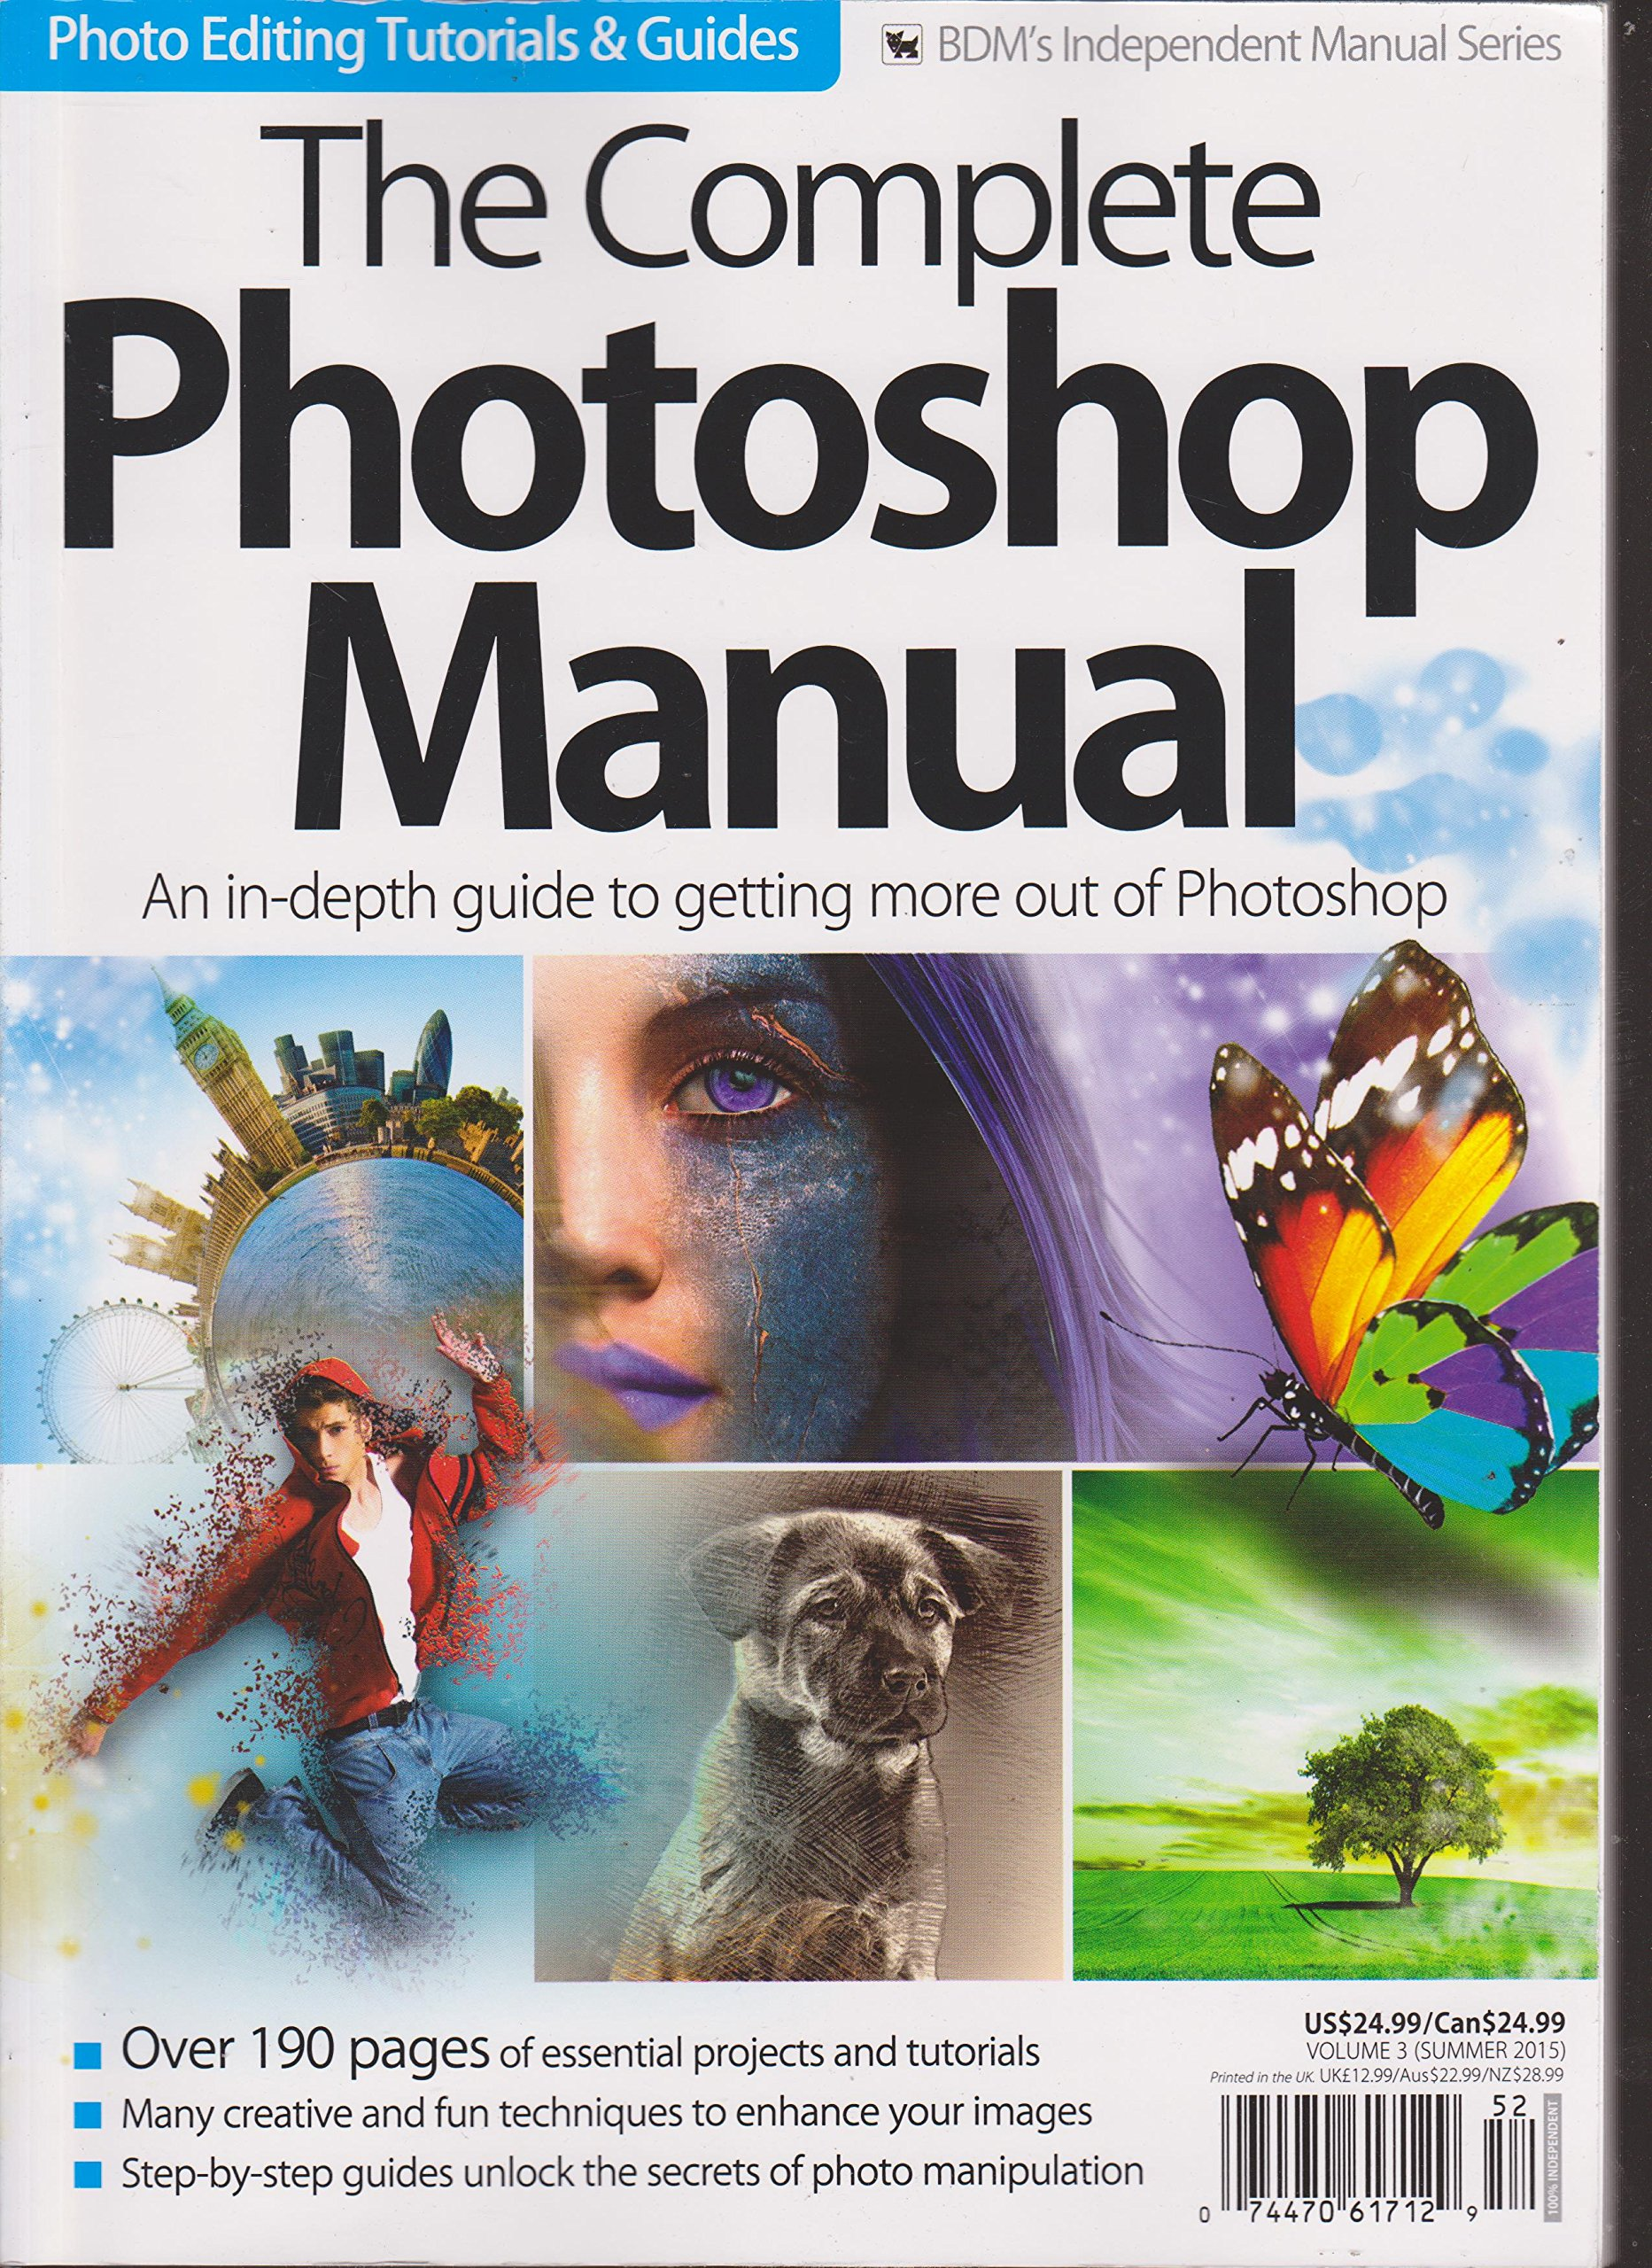 The Complete Photoshop Manual: Expert Tutorials To Improve Your Skills – October 2020